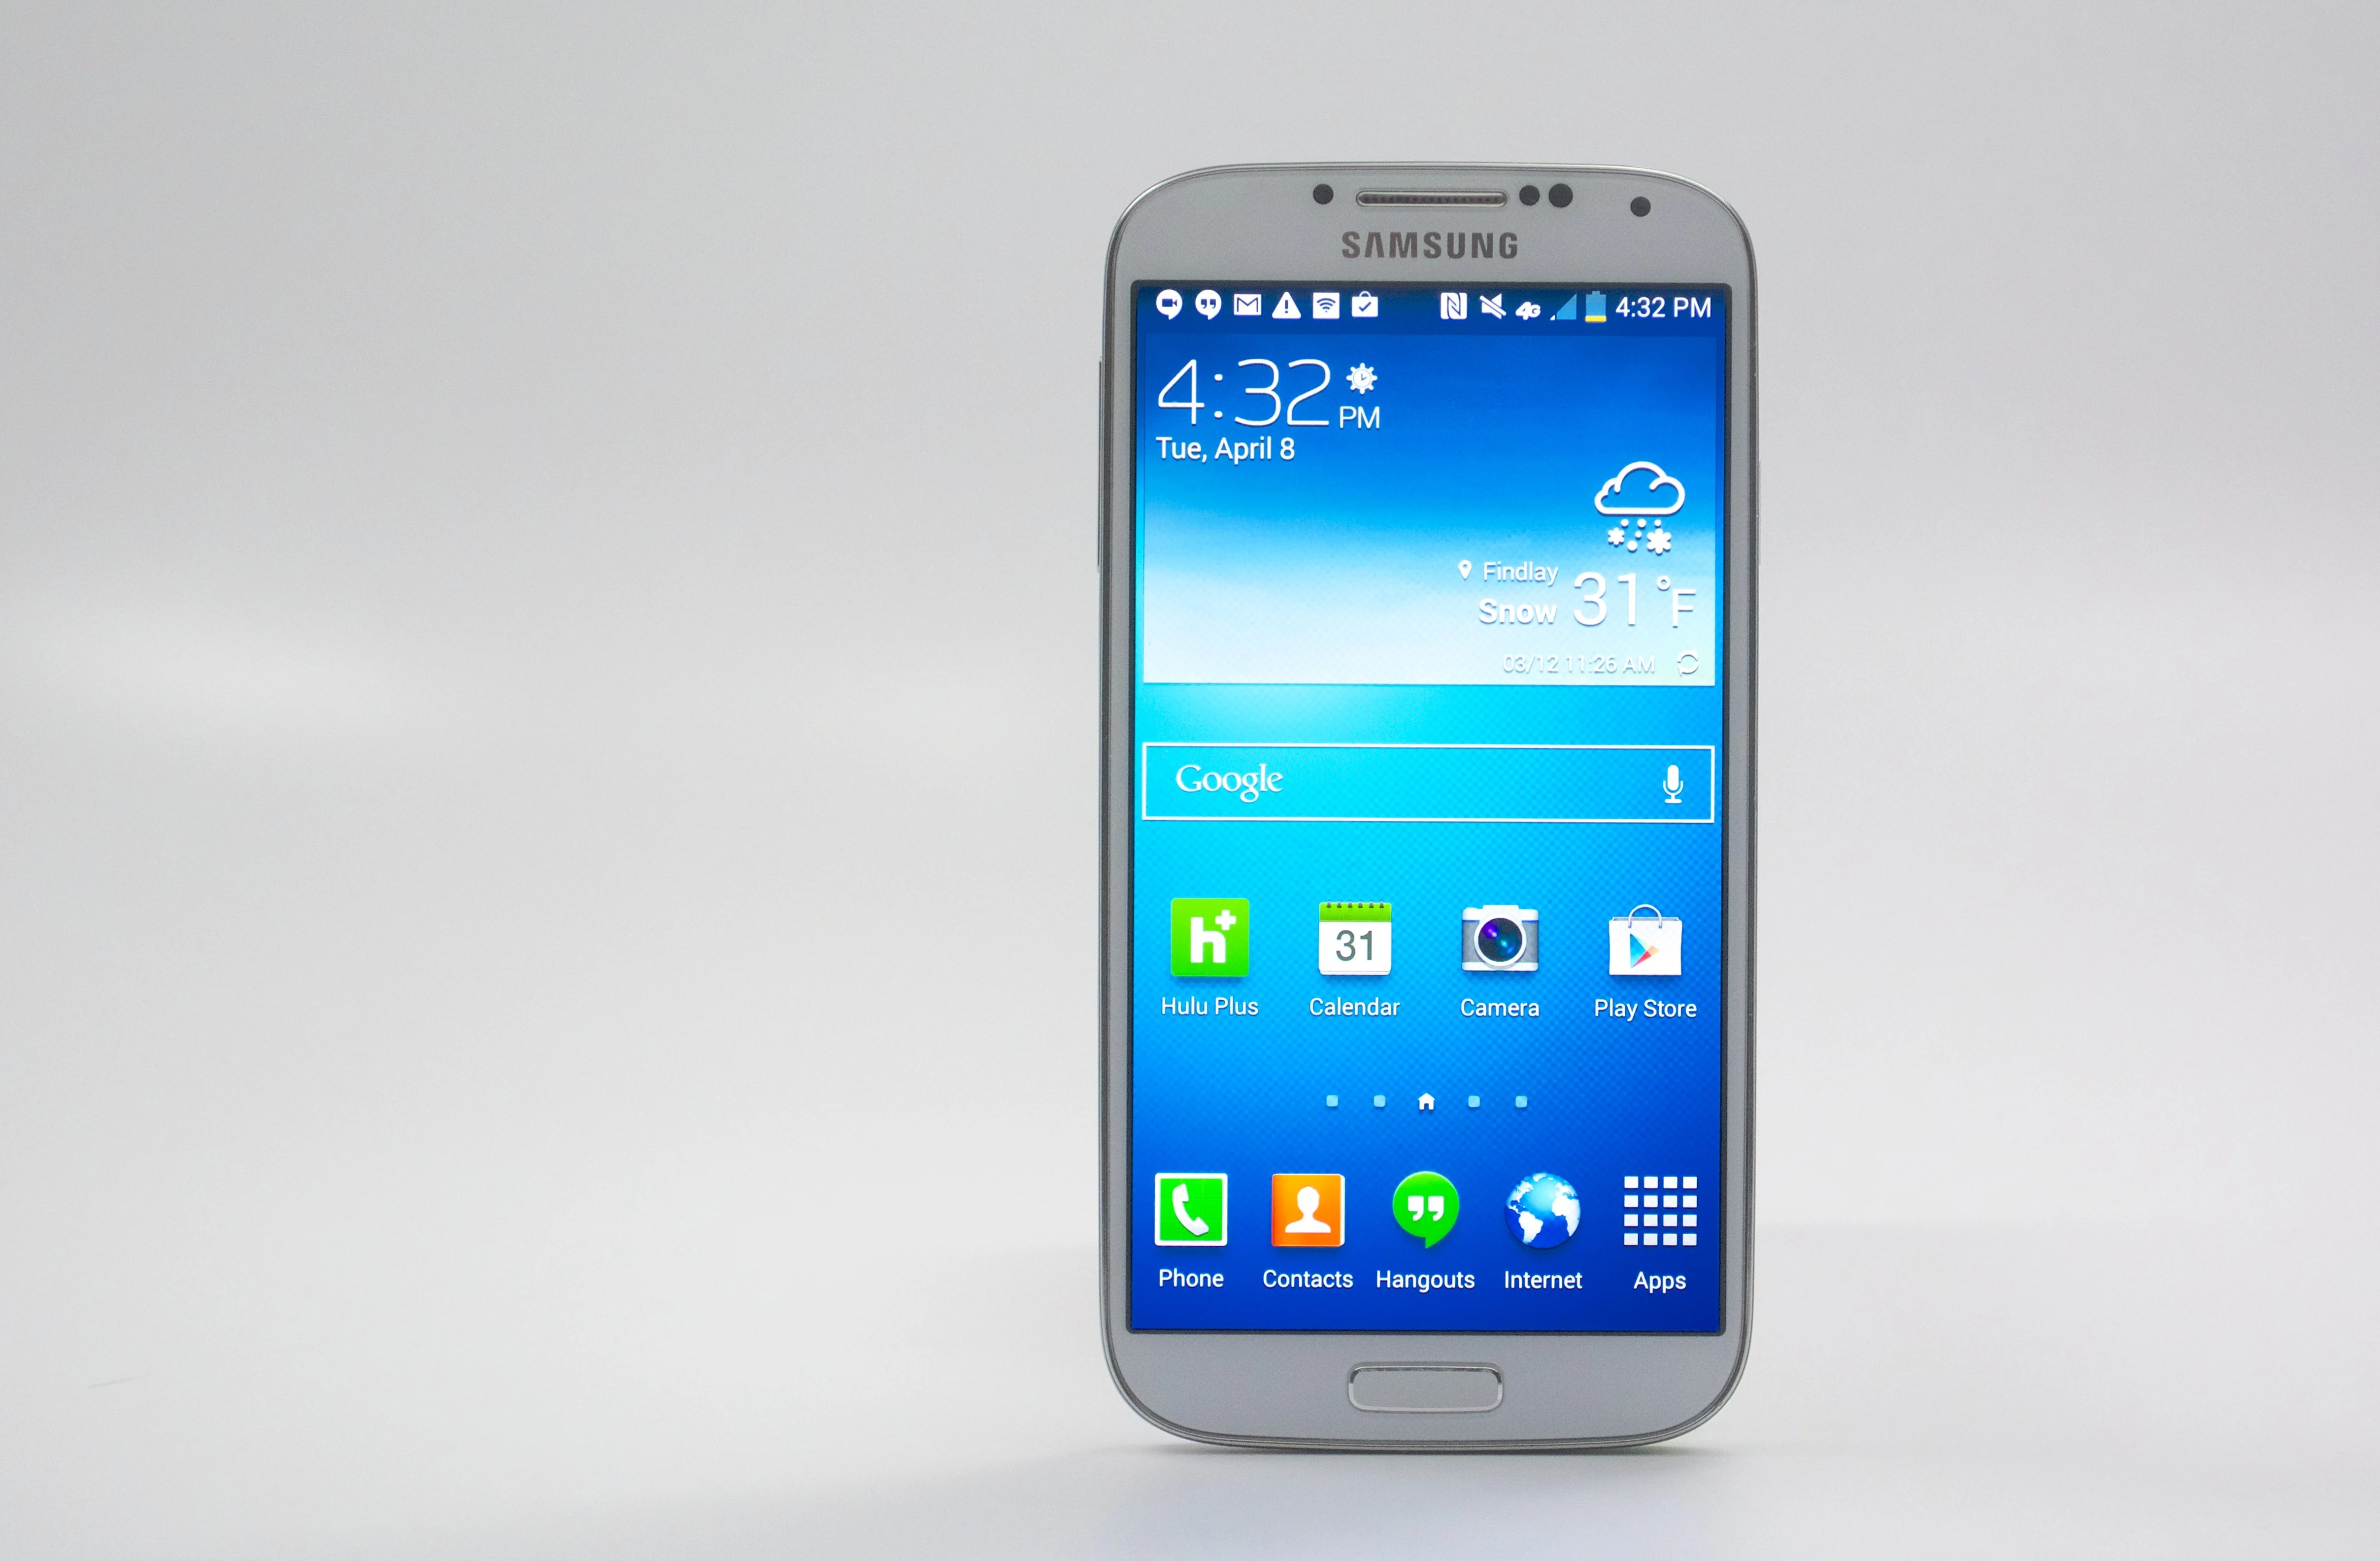 Samsung Galaxy S4 Review 2014